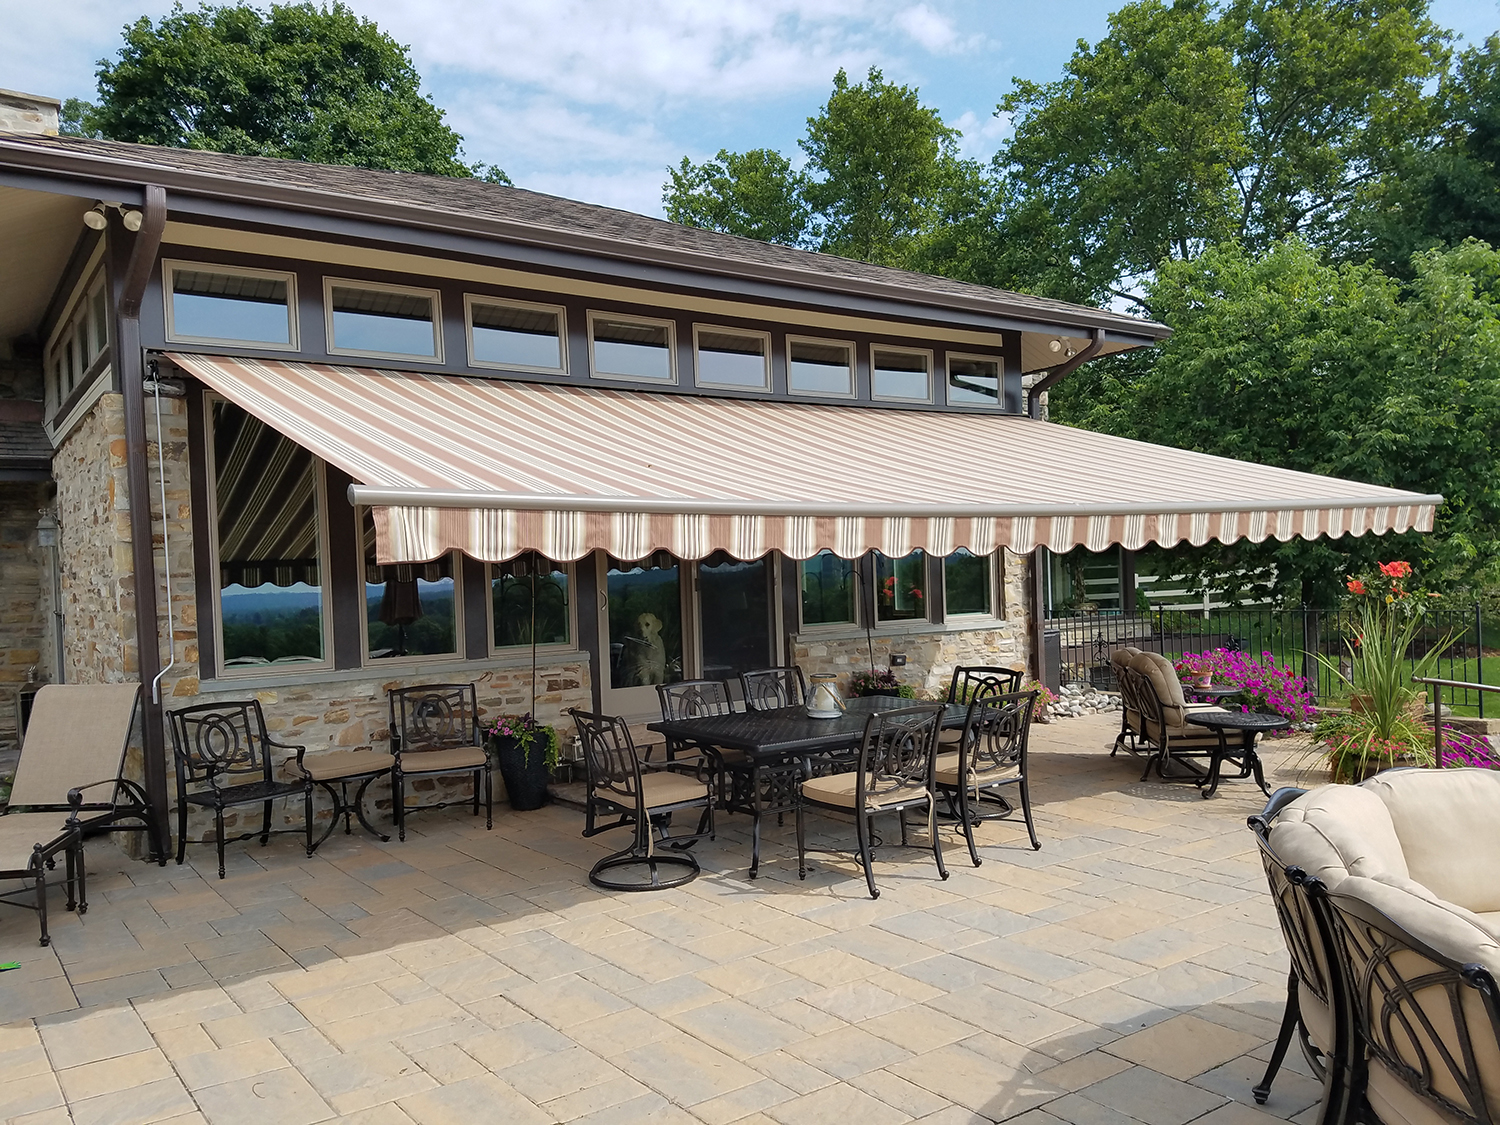 Photo of an Awning Installation